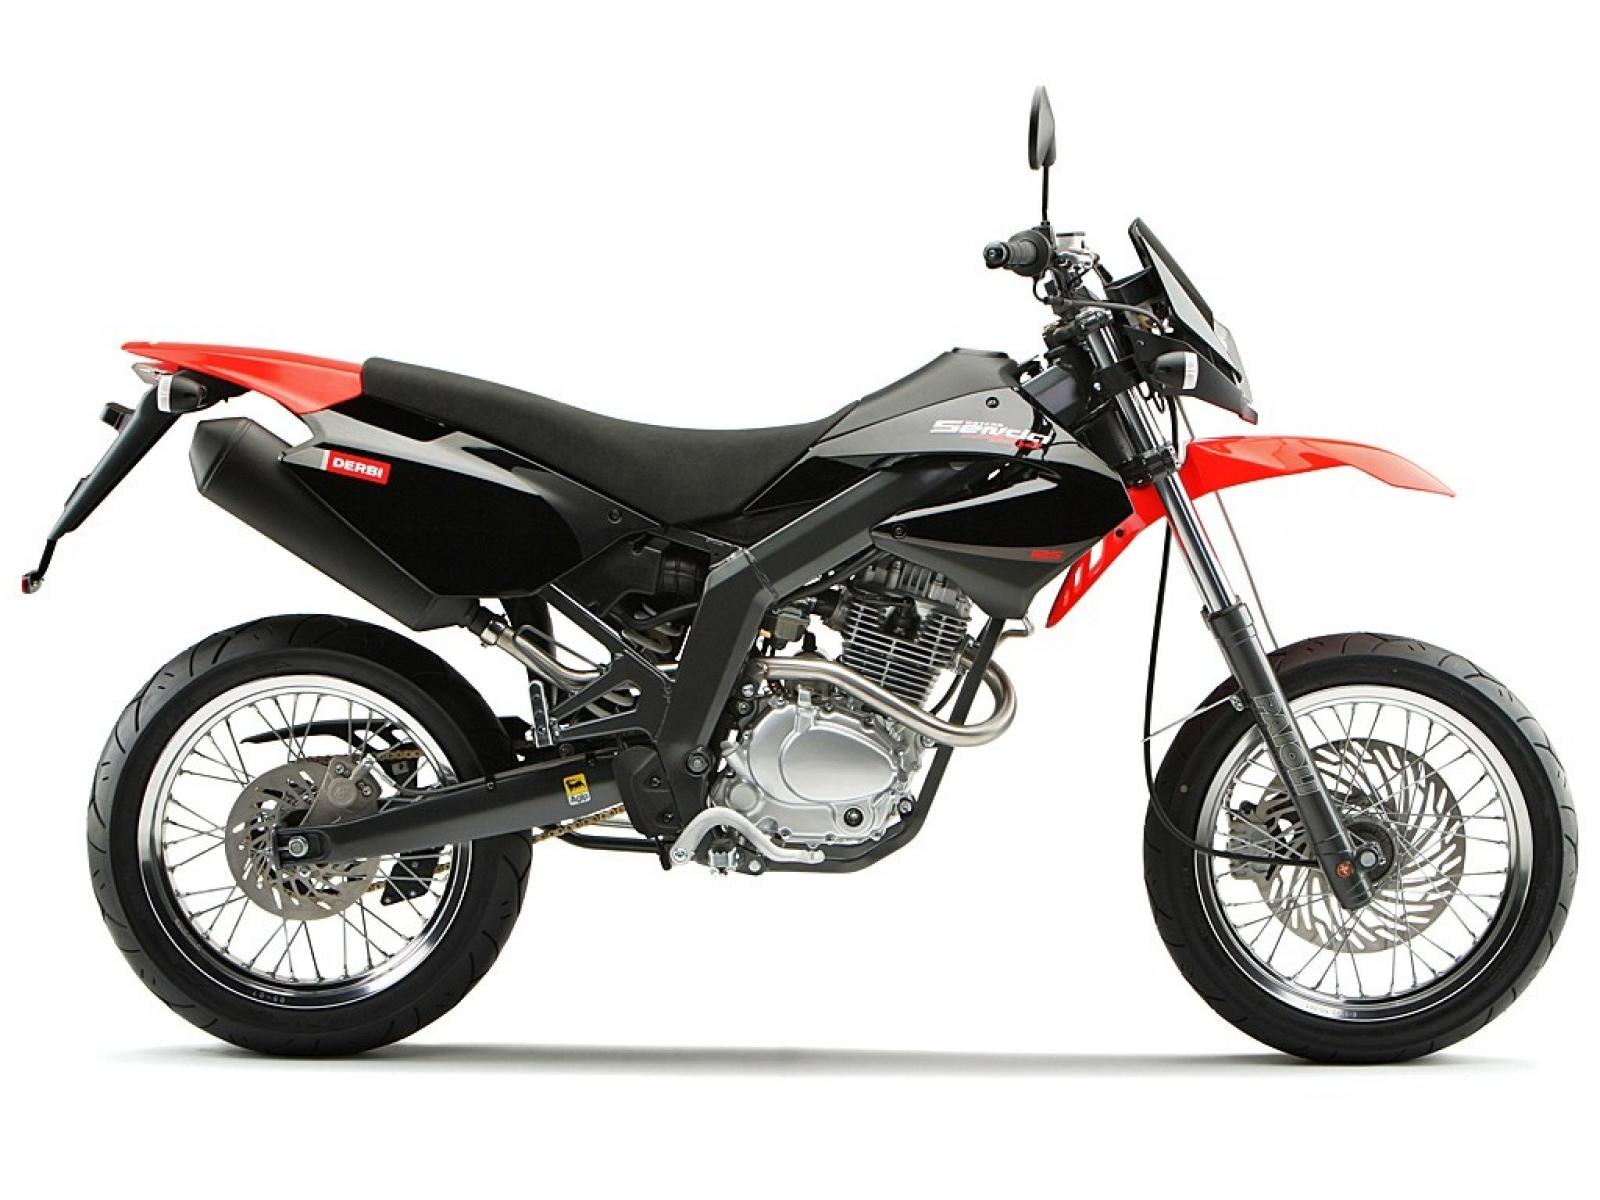 2009 derbi senda baja 125 sm moto zombdrive com. Black Bedroom Furniture Sets. Home Design Ideas